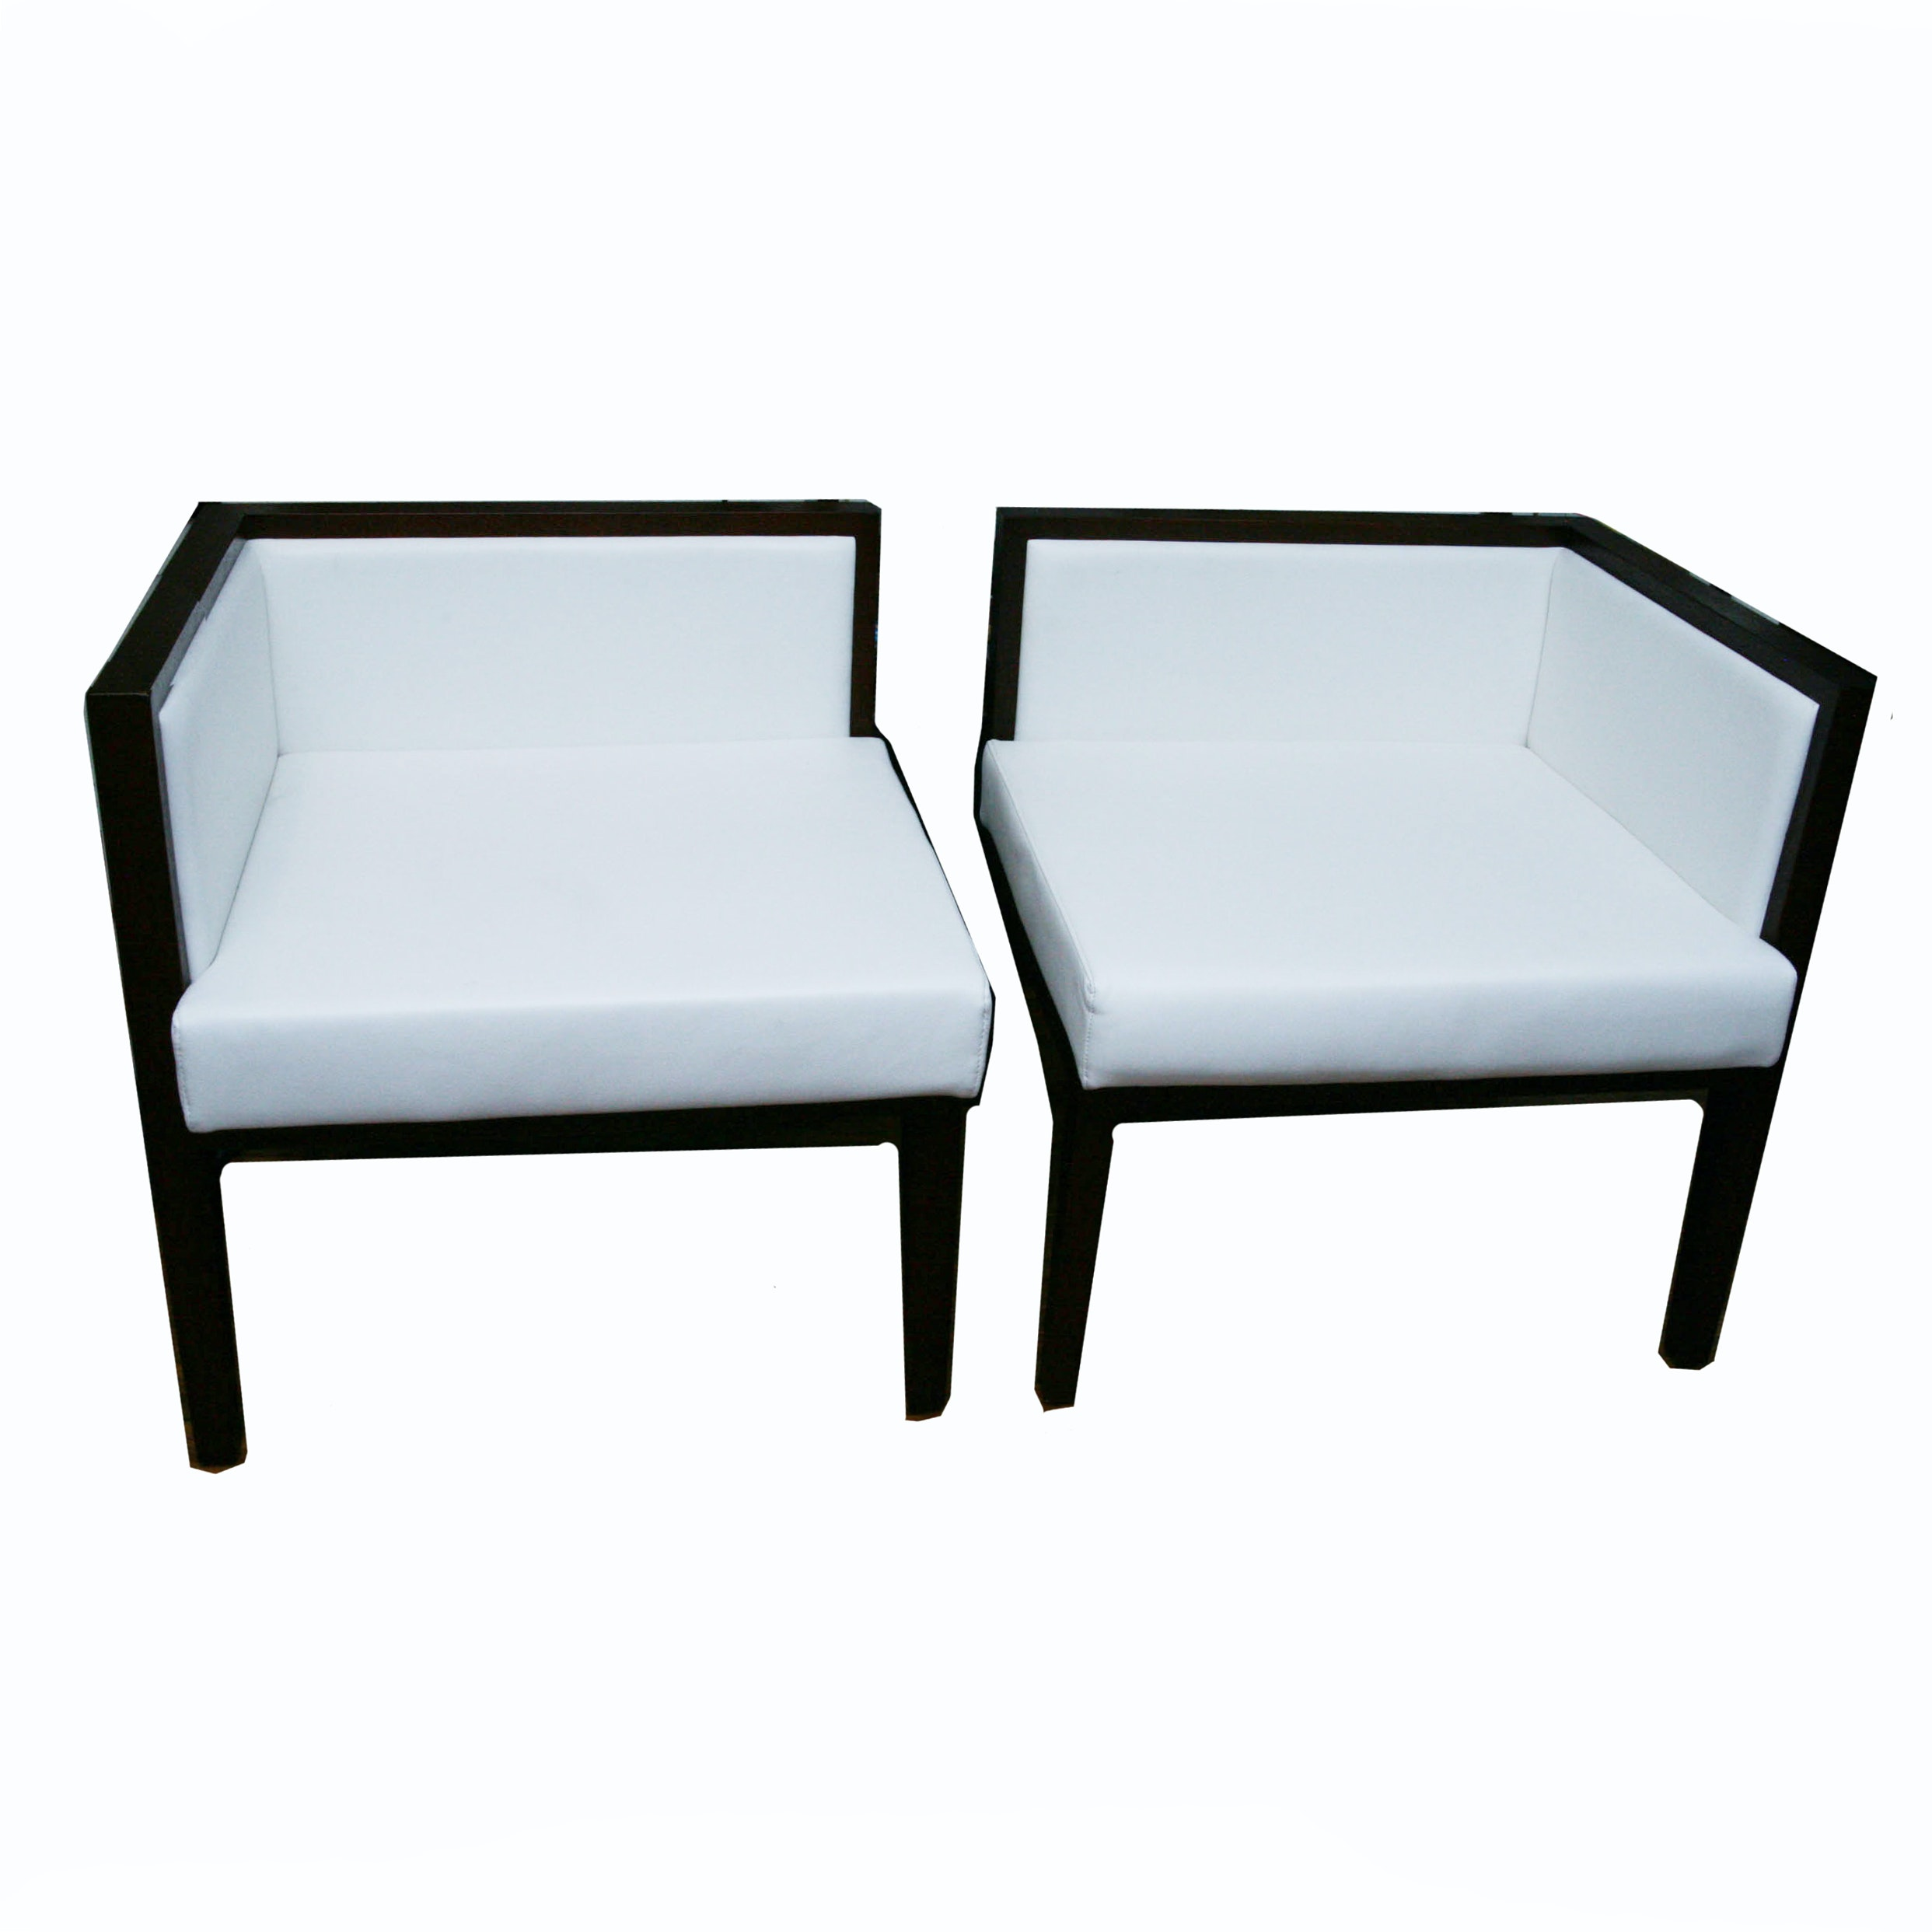 Pair of Modular Corner Chairs in White Leather